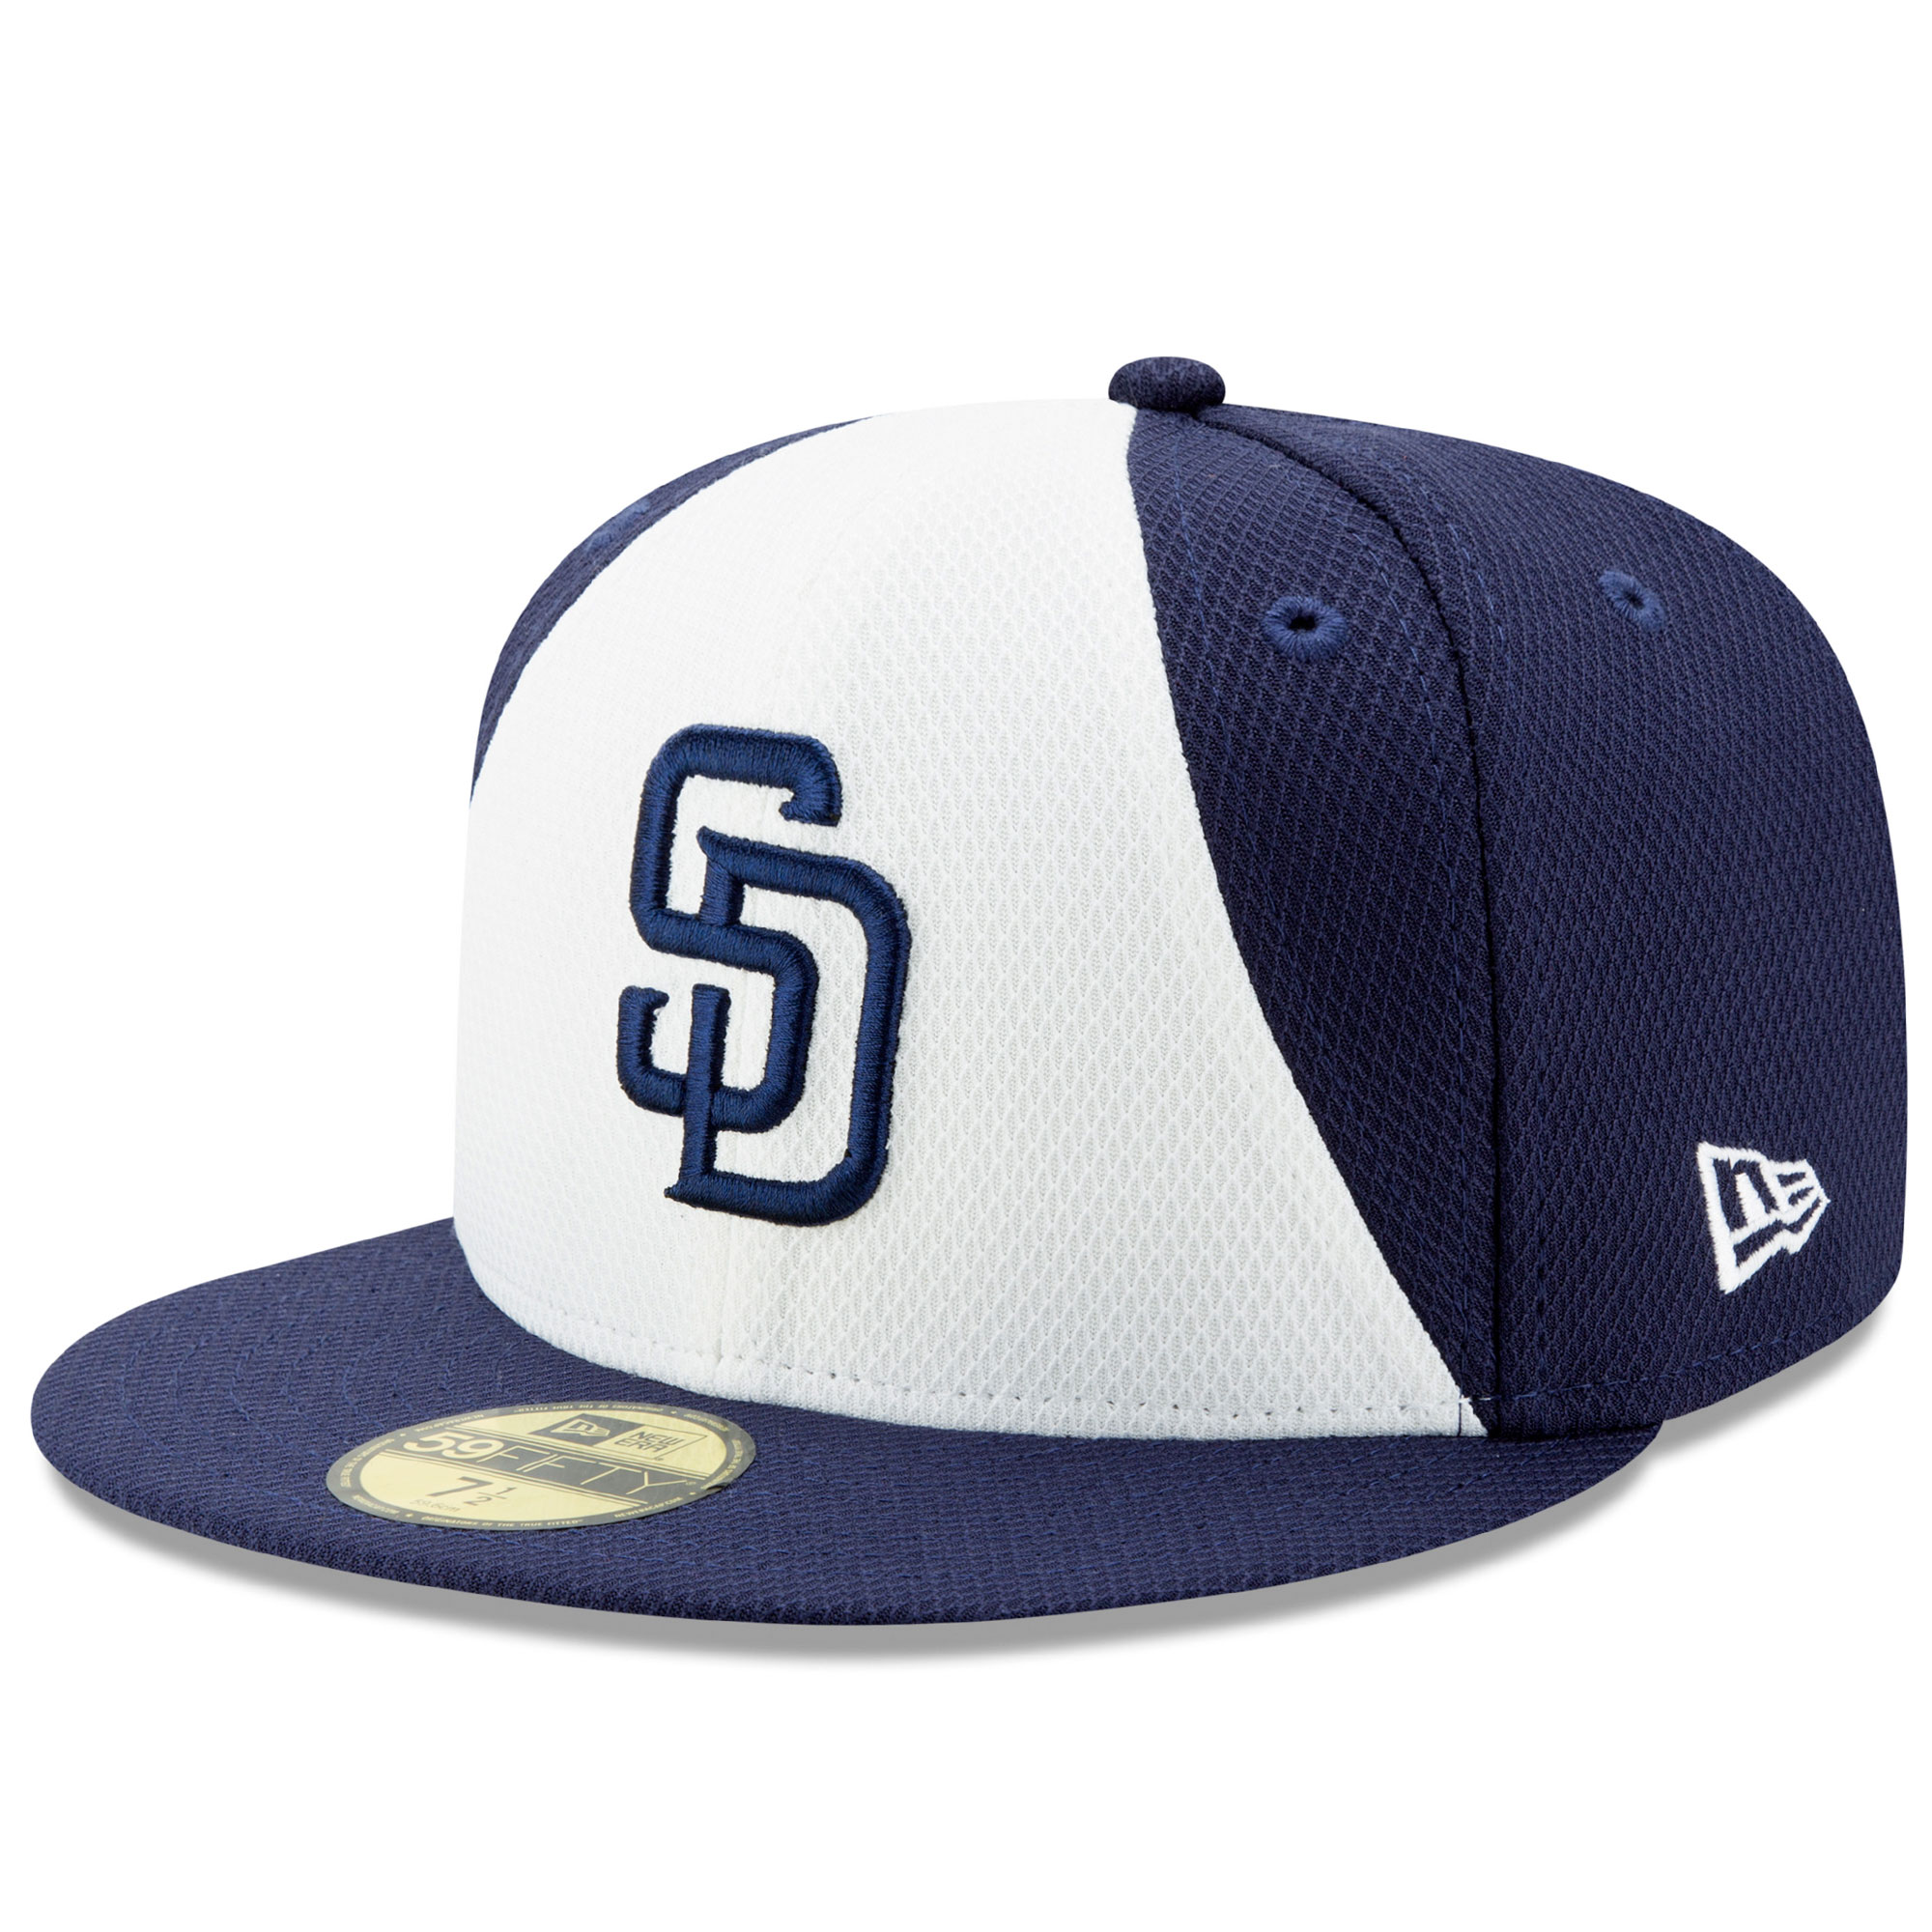 San Diego Padres New Era Diamond Era 59FIFTY Fitted Hat - White/Navy